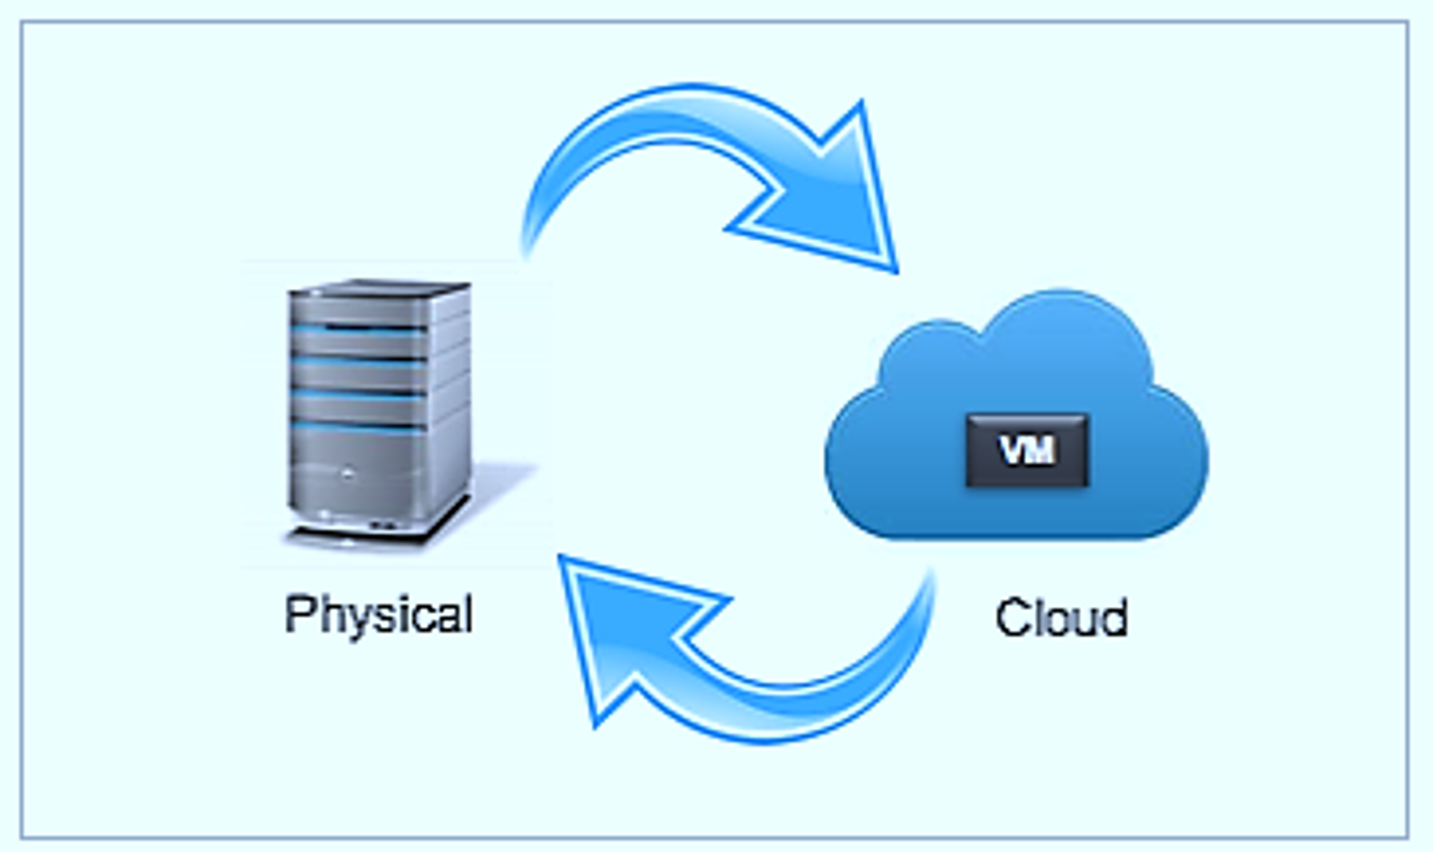 Differences Between Physical Server vs Virtual Machine